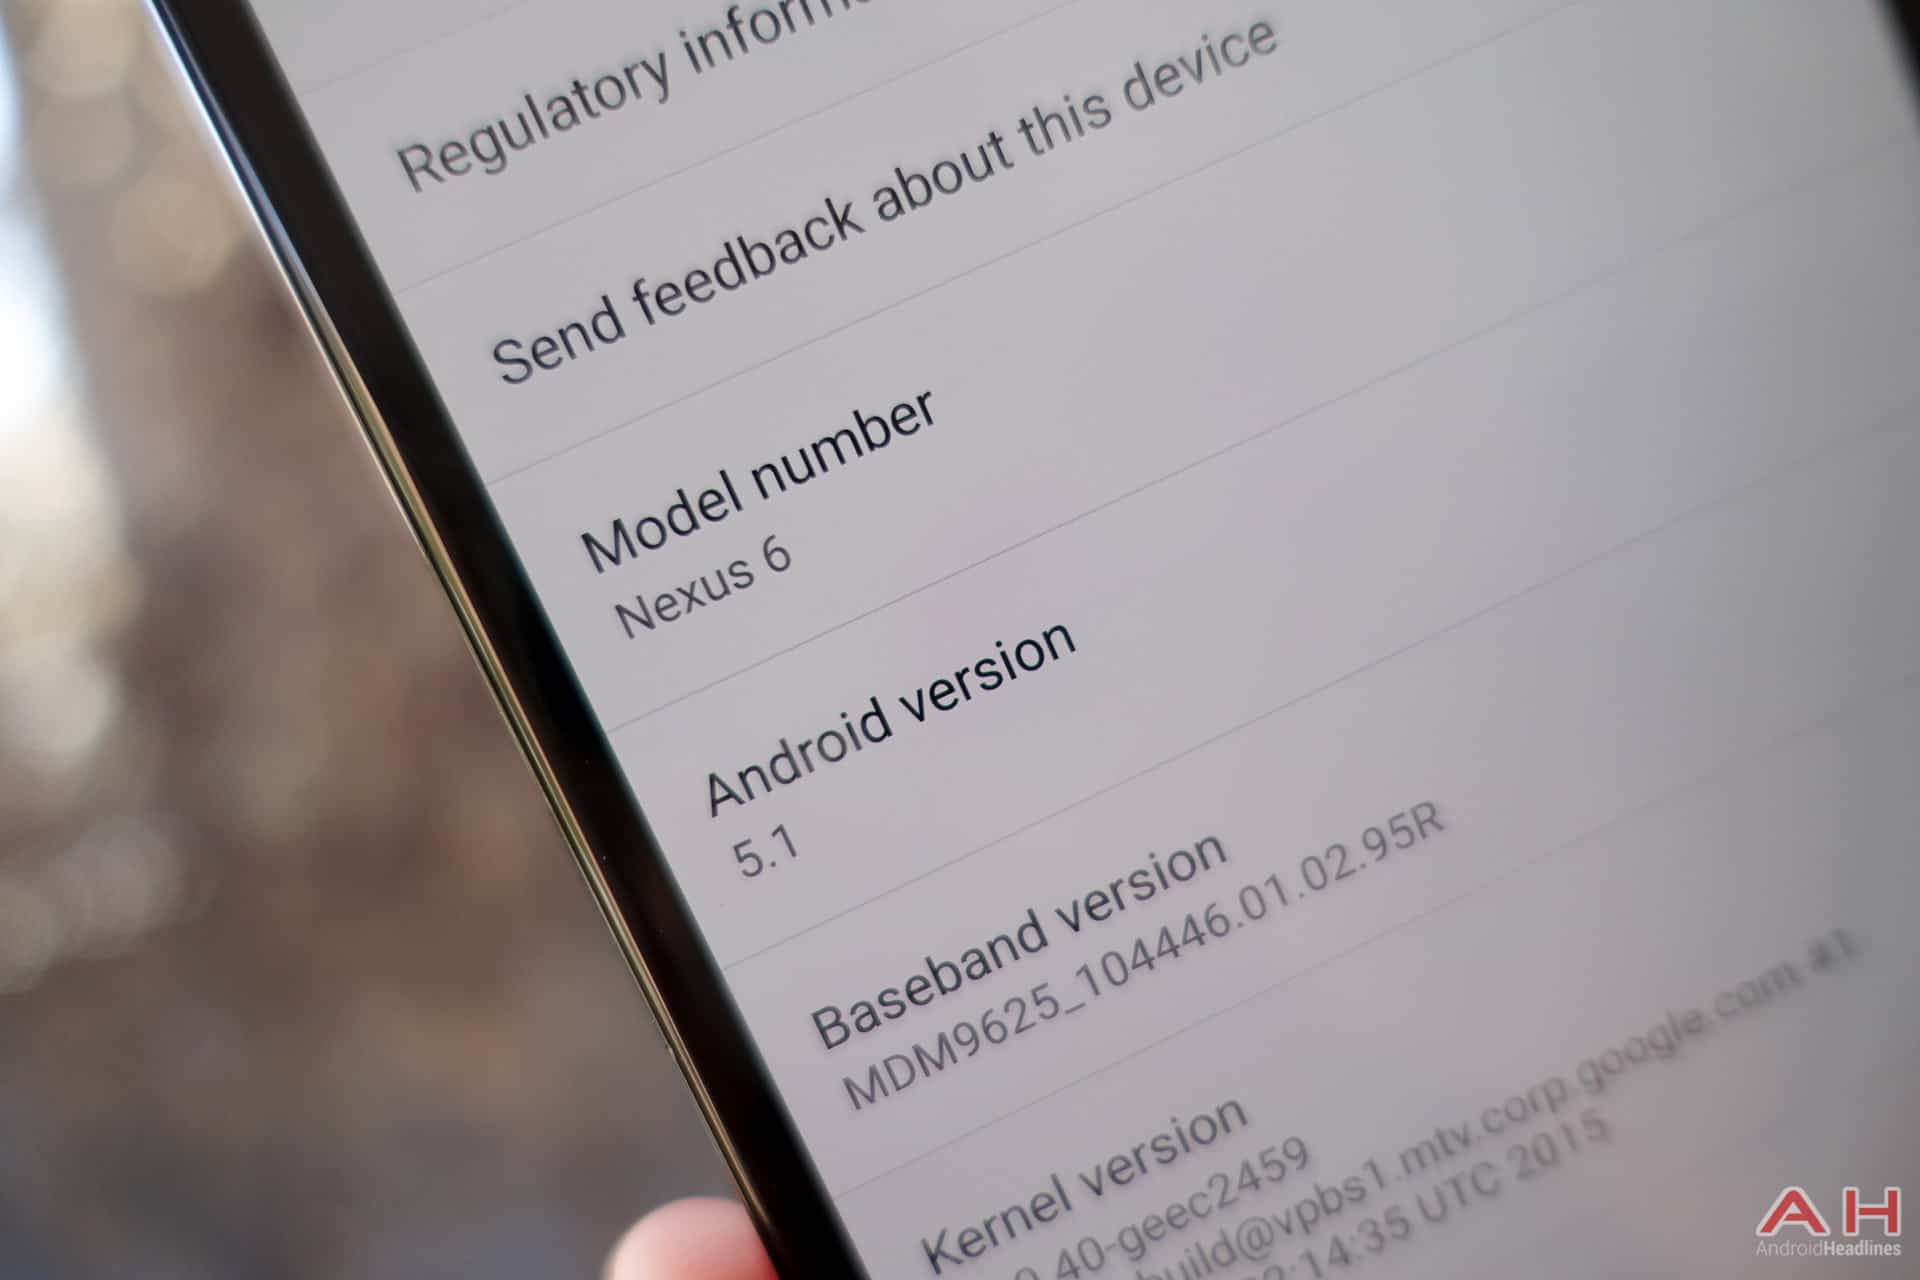 Android 5.1 Lollipop Memory Leak Issue Gets Internal Fix But Still ...